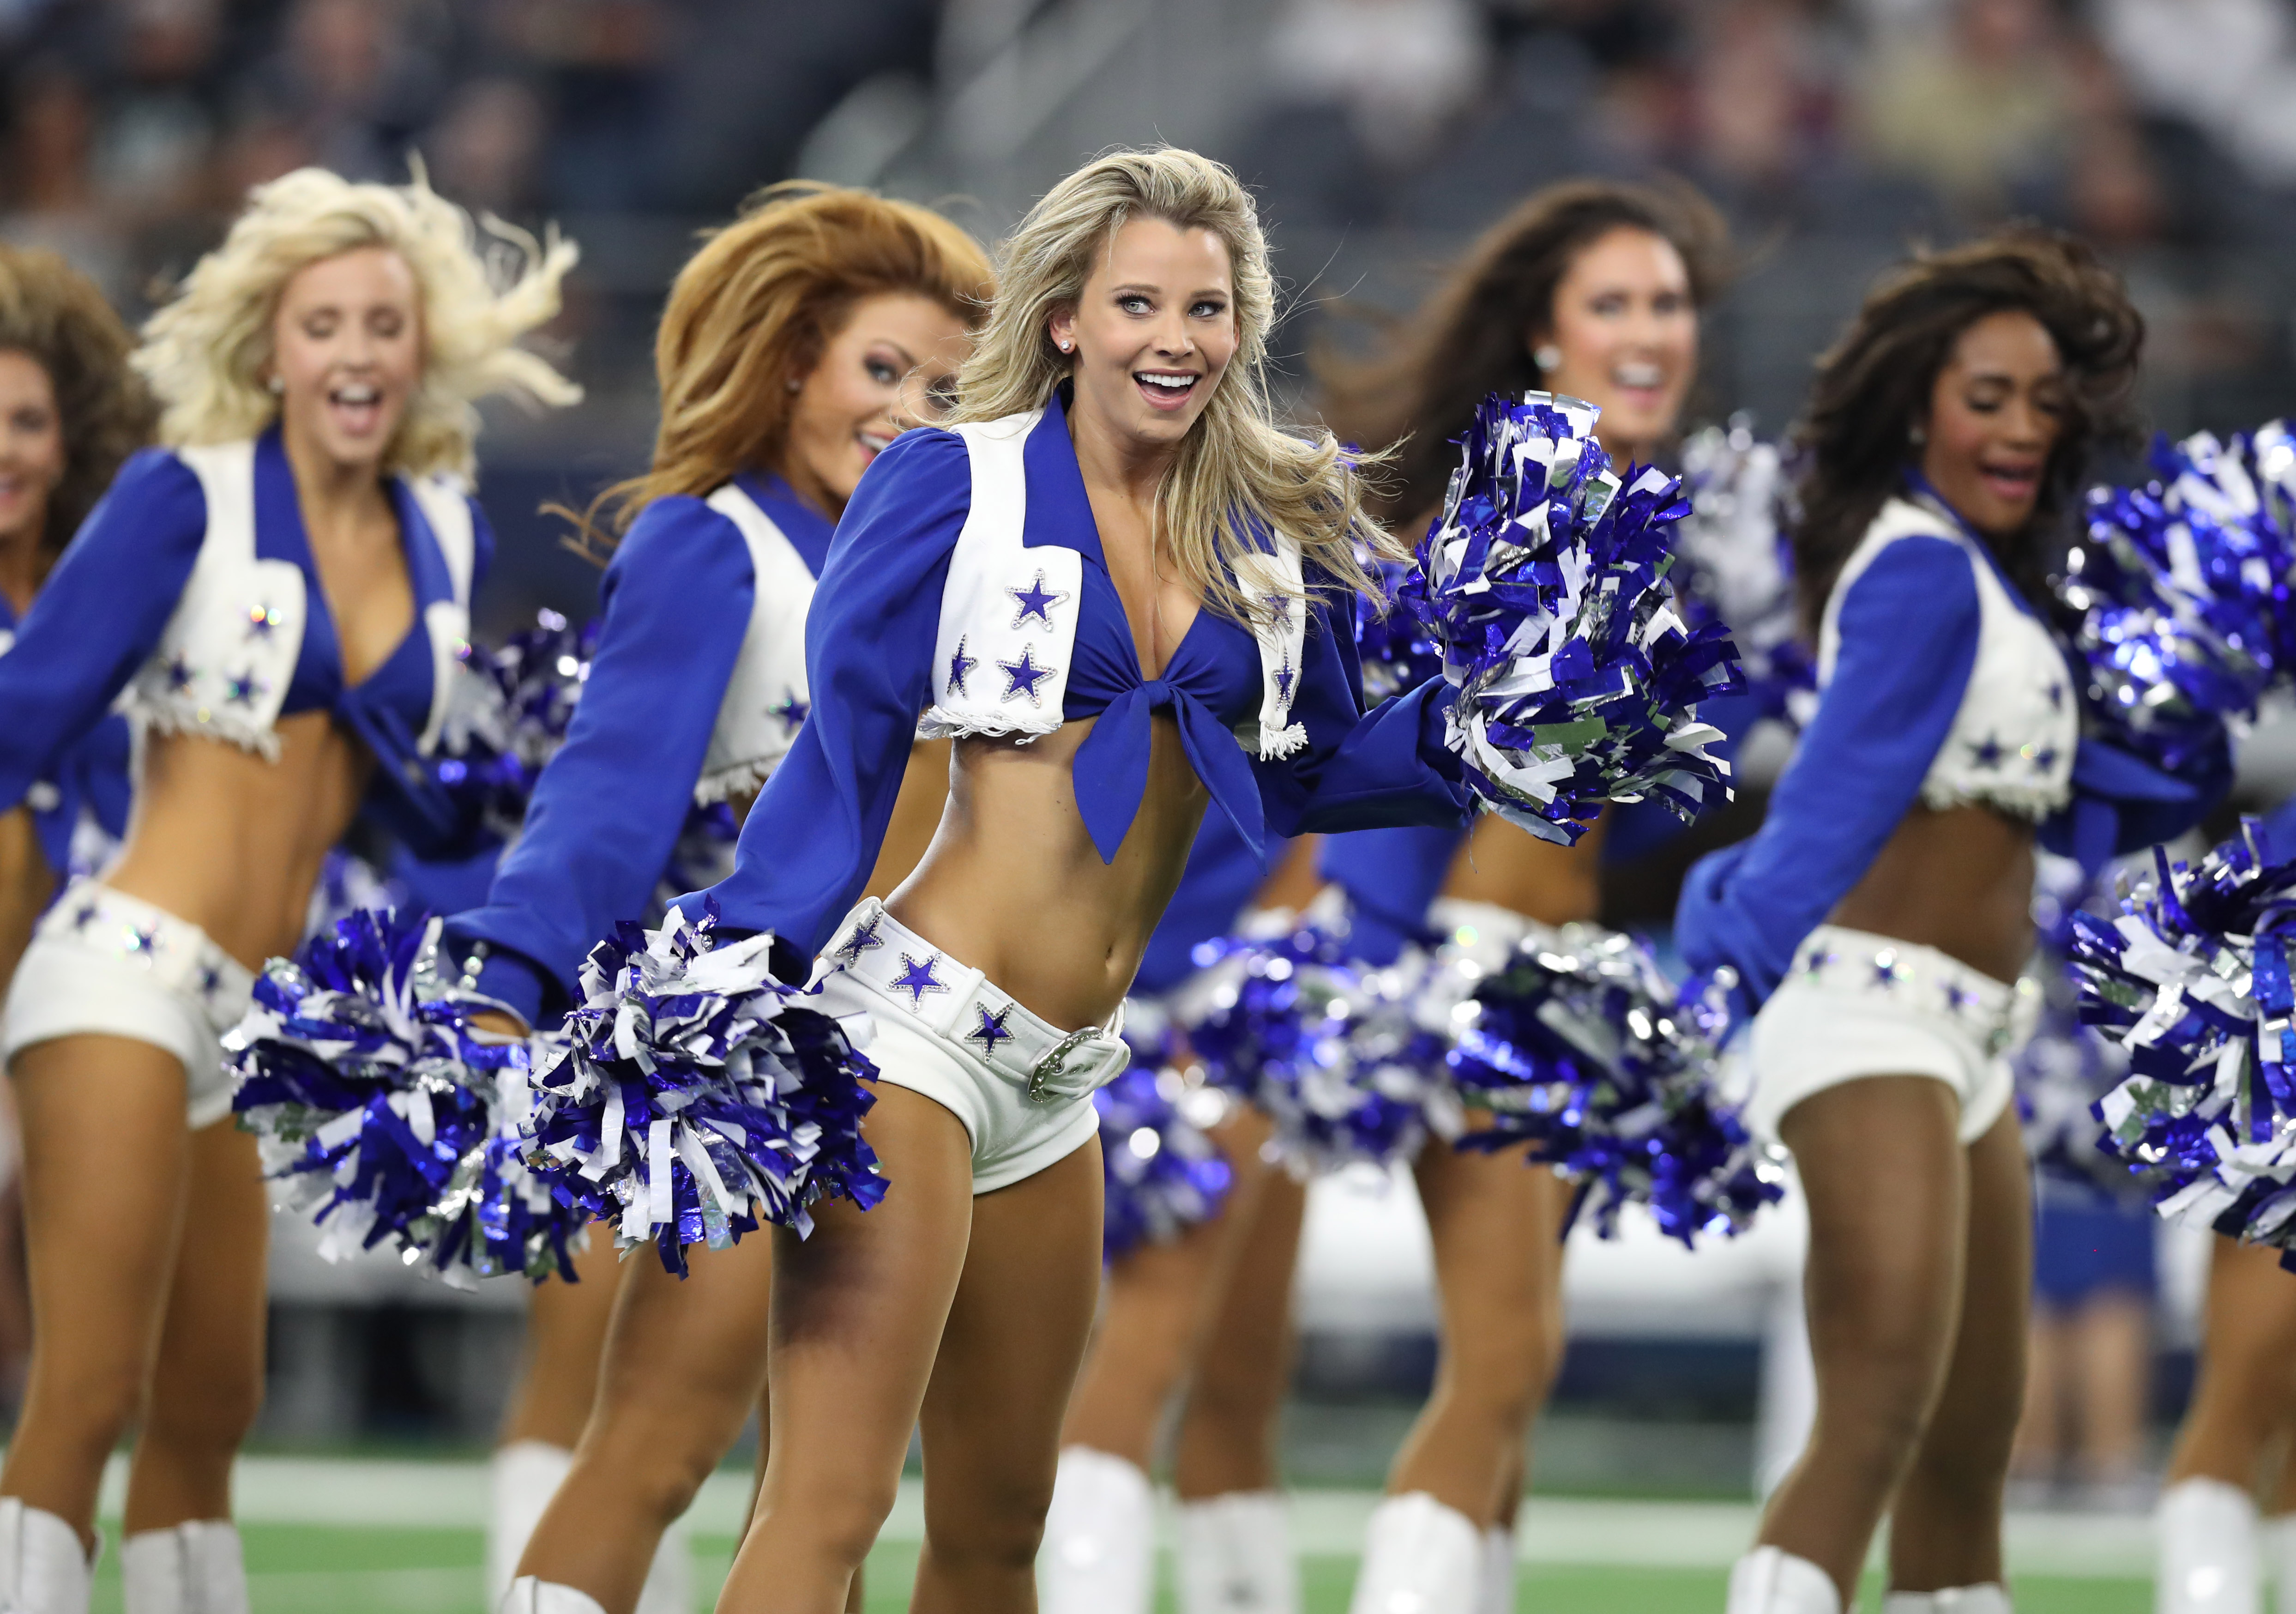 Aug 26, 2017; Arlington, TX, USA; Dallas Cowboys cheerleaders perform prior to the game against the Oakland Raiders at AT&T Stadium. Mandatory Credit: Matthew Emmons-USA TODAY Sports